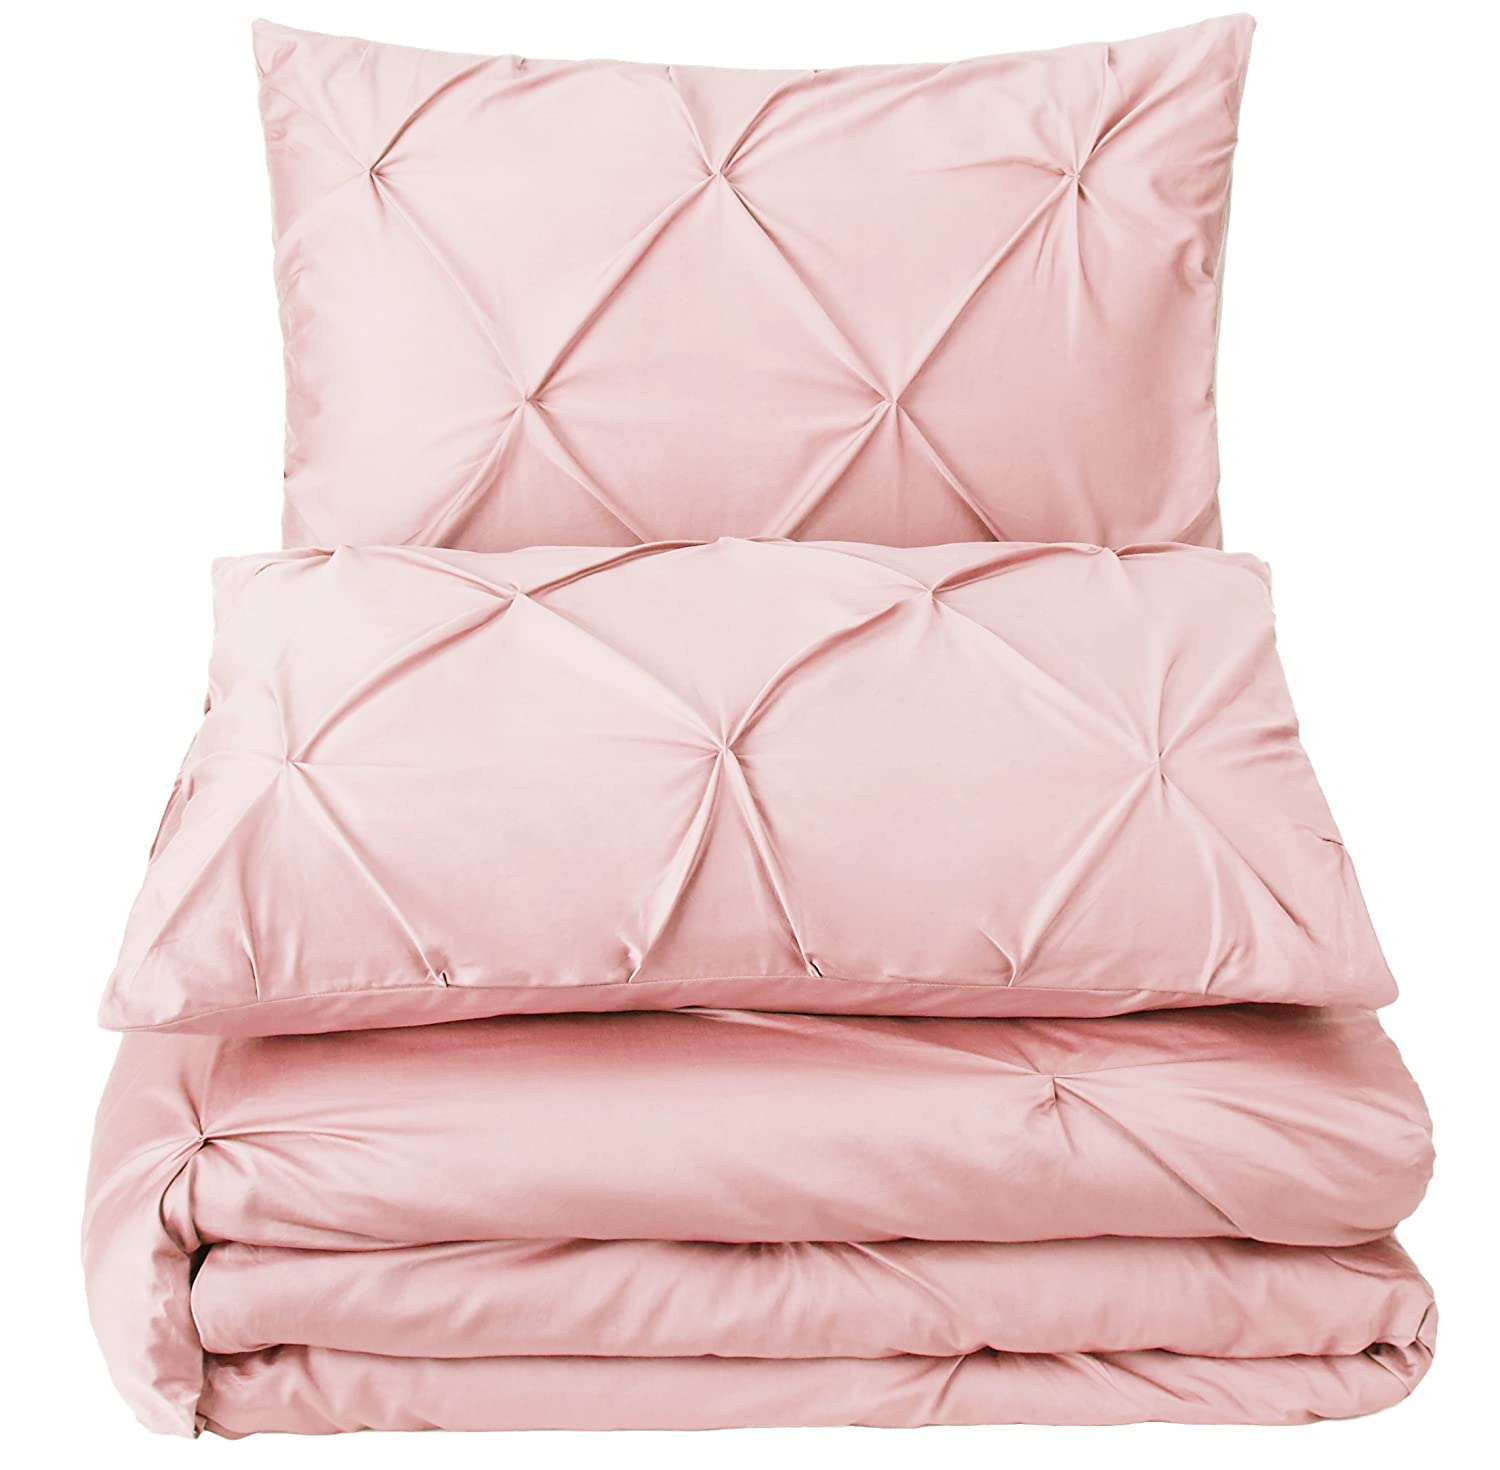 wpzkinfo pink throw portfolio grey pillow for www with pale pillows couch